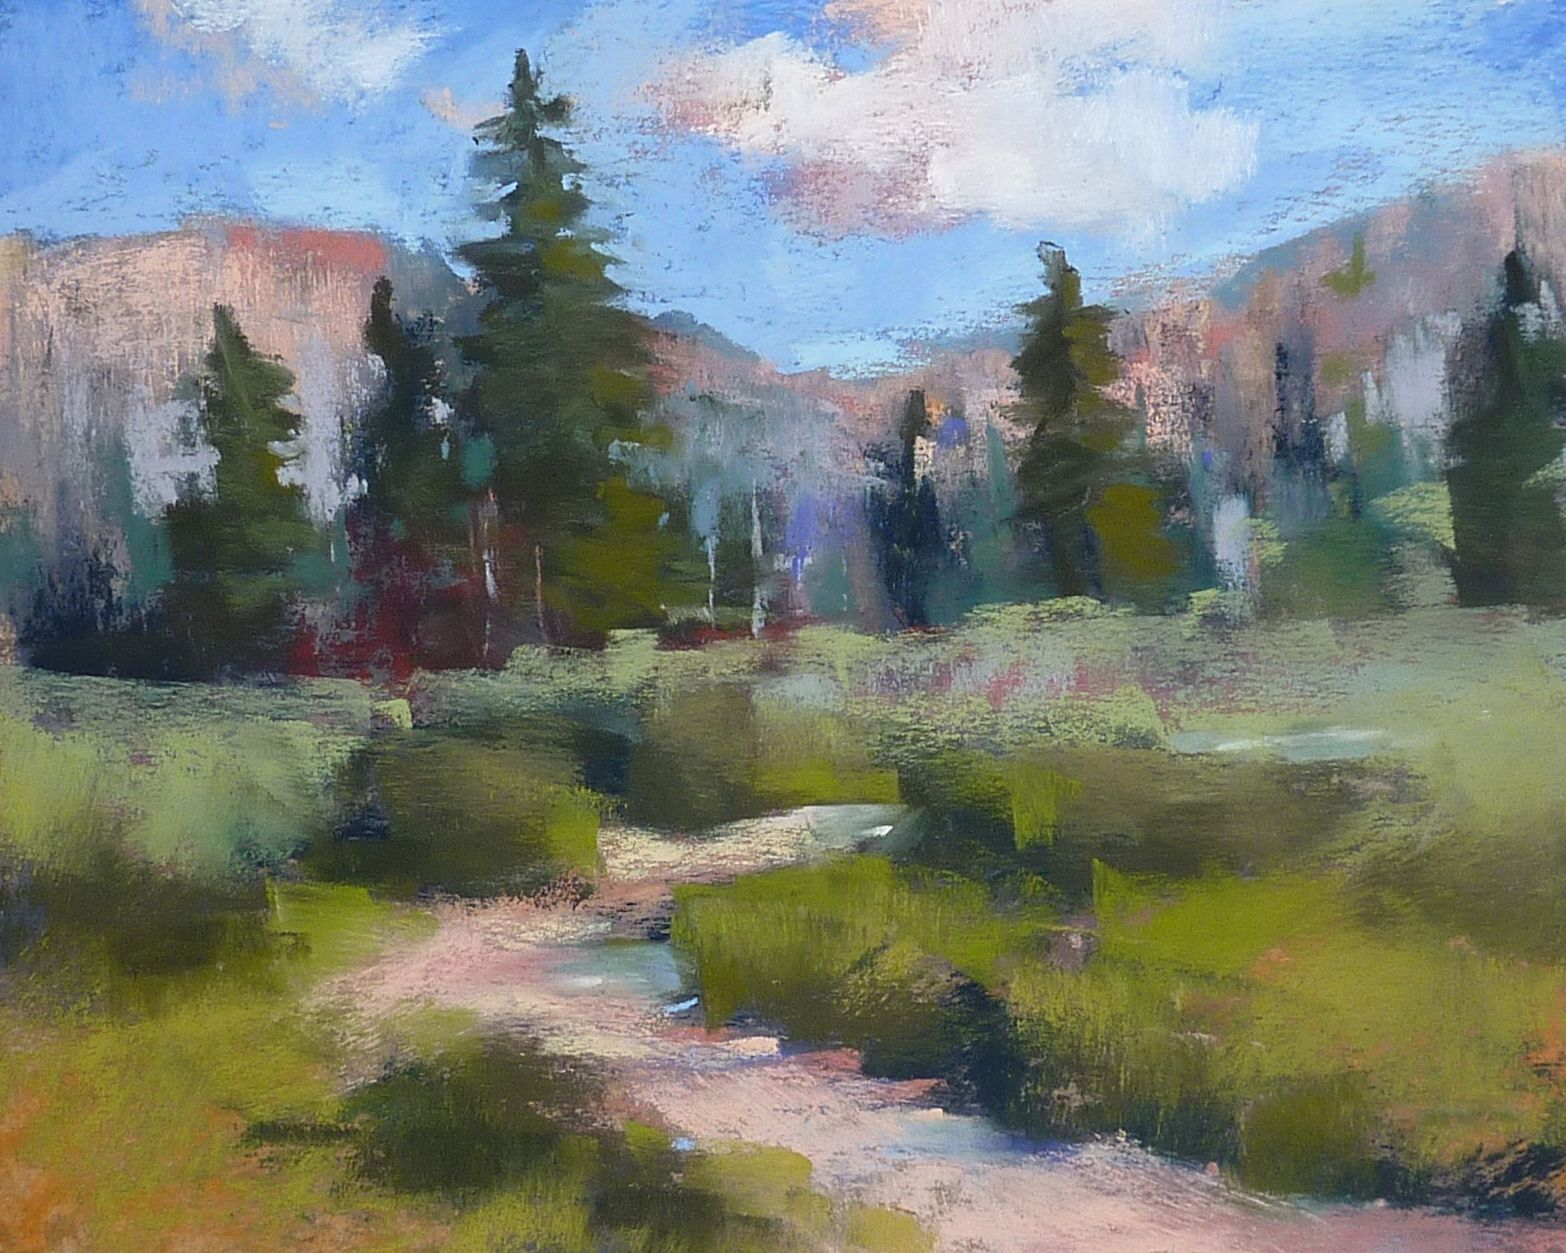 Pastel Landscape Demo Step by Step   WATERCOLOR, PASTELS, THEORY ...